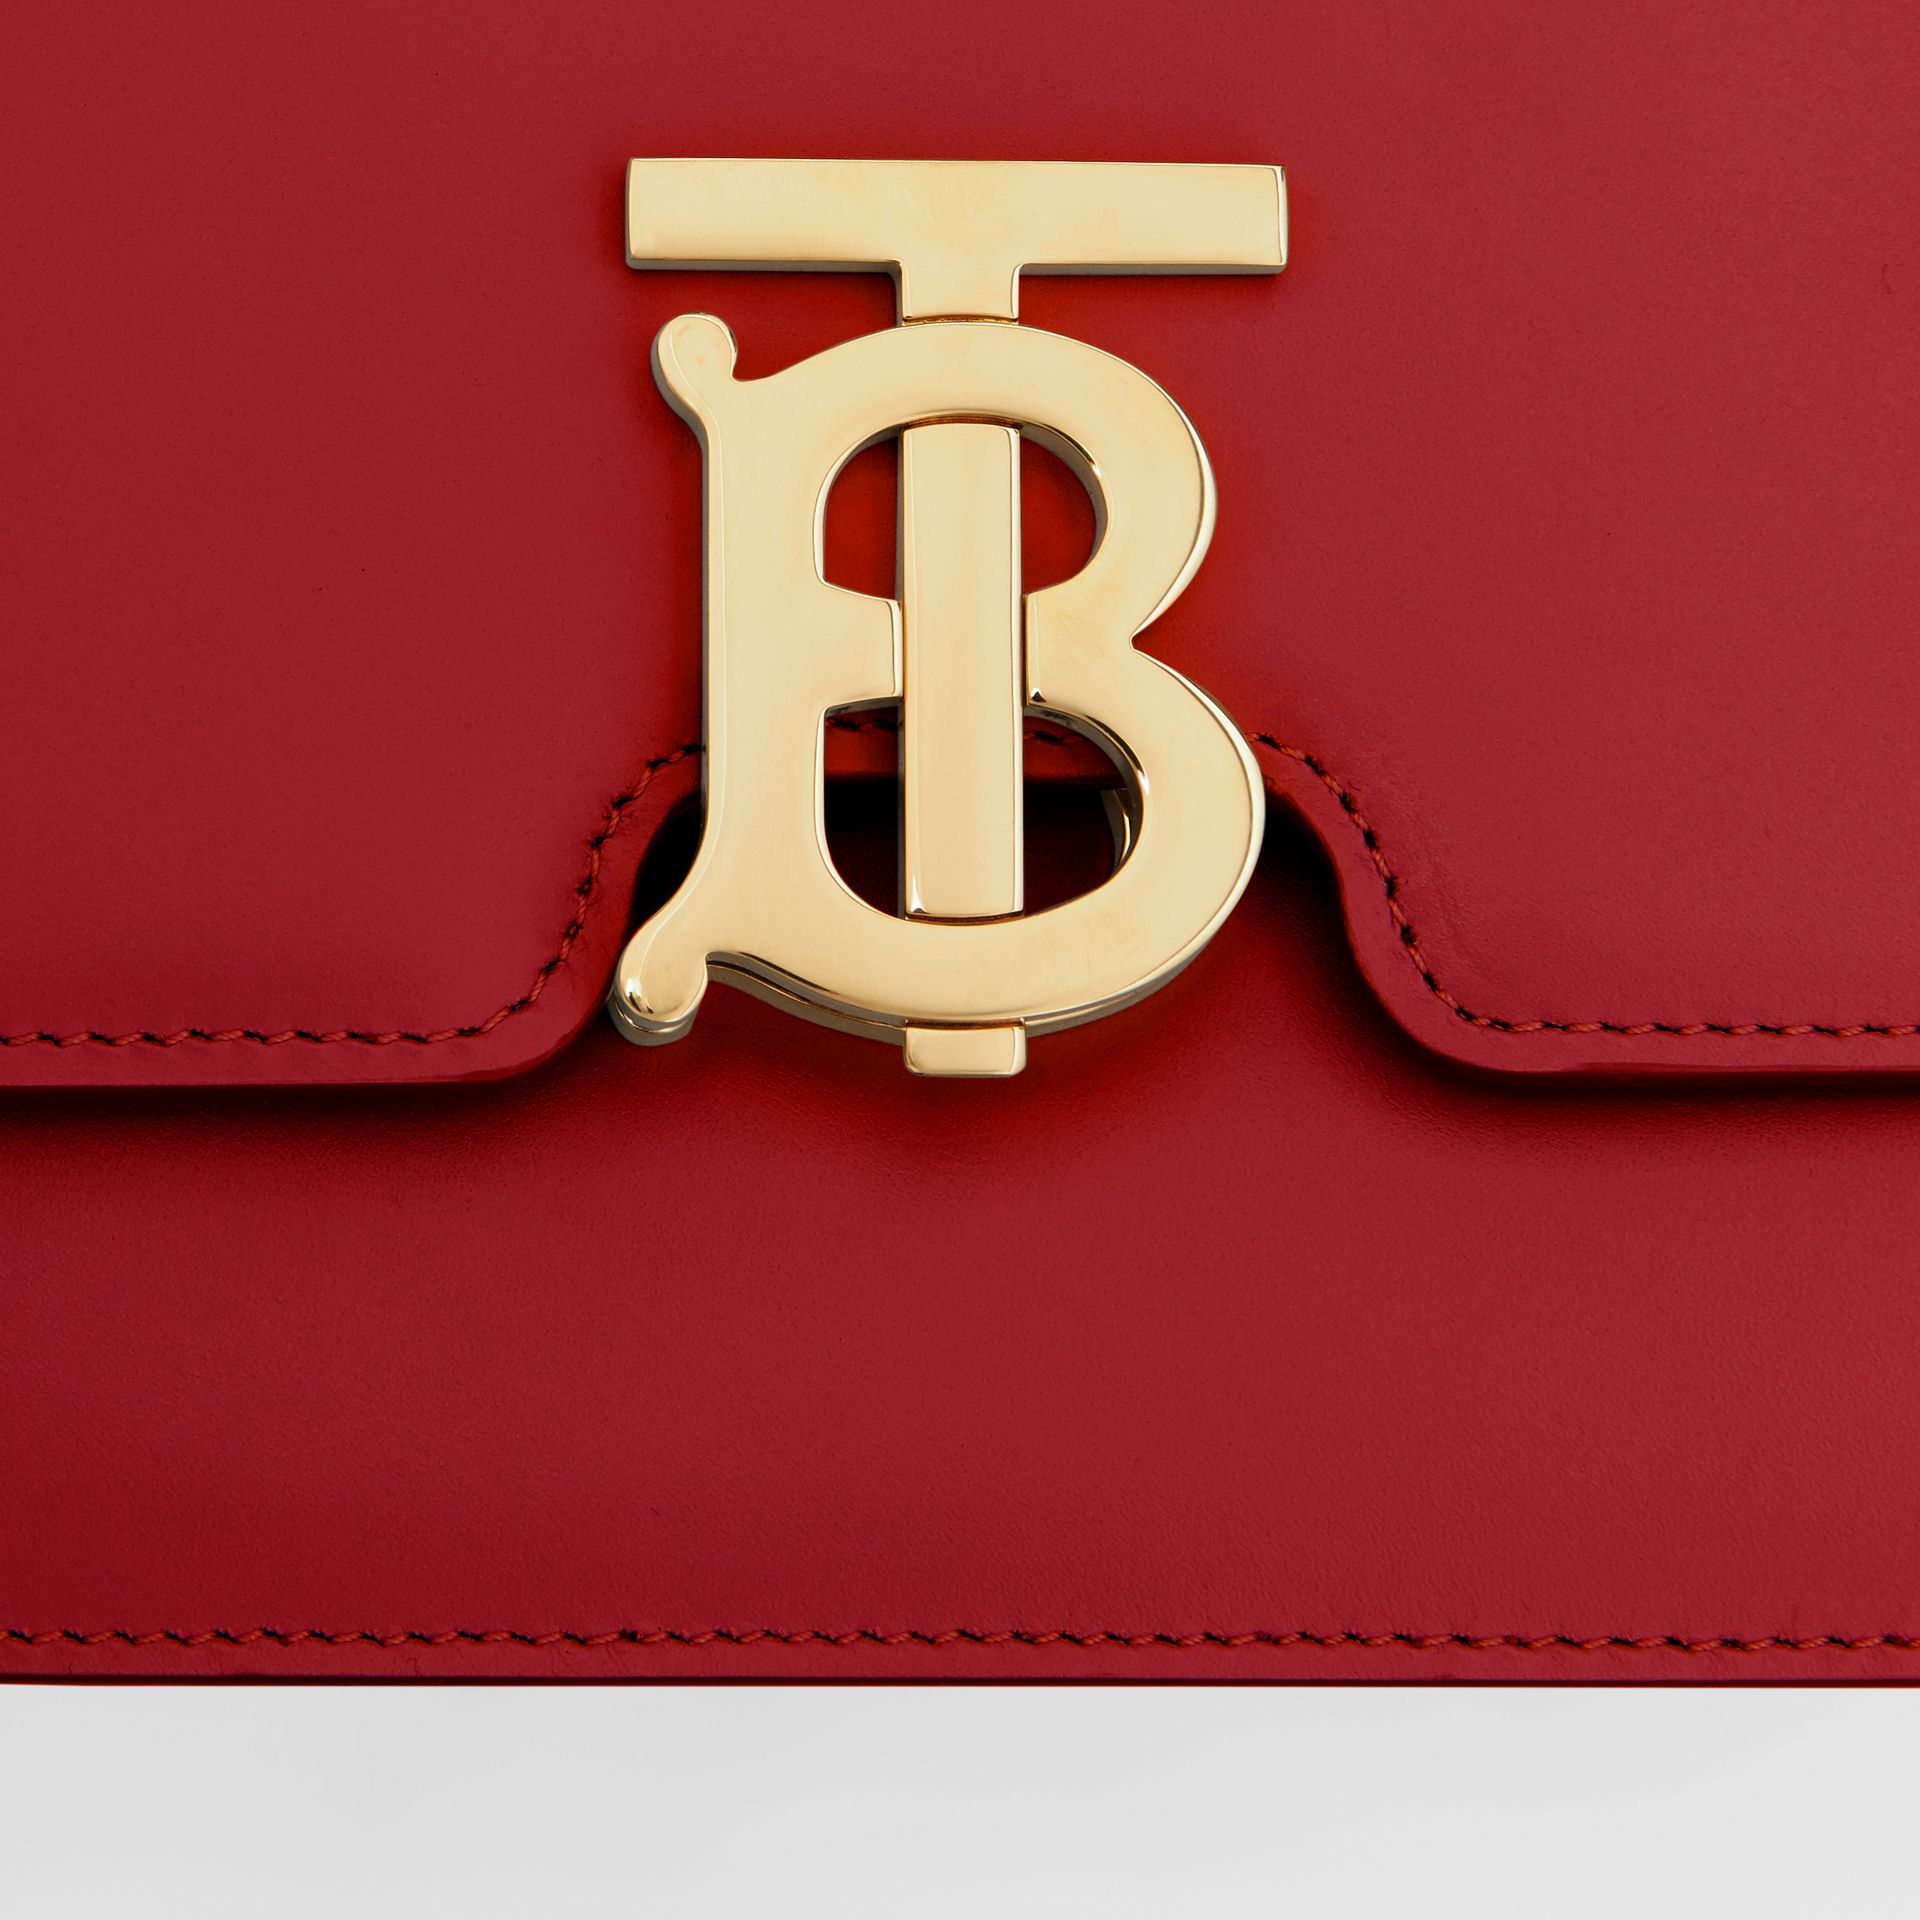 Small Leather TB Bag in Dark Carmine - Women | Burberry Australia - gallery image 1